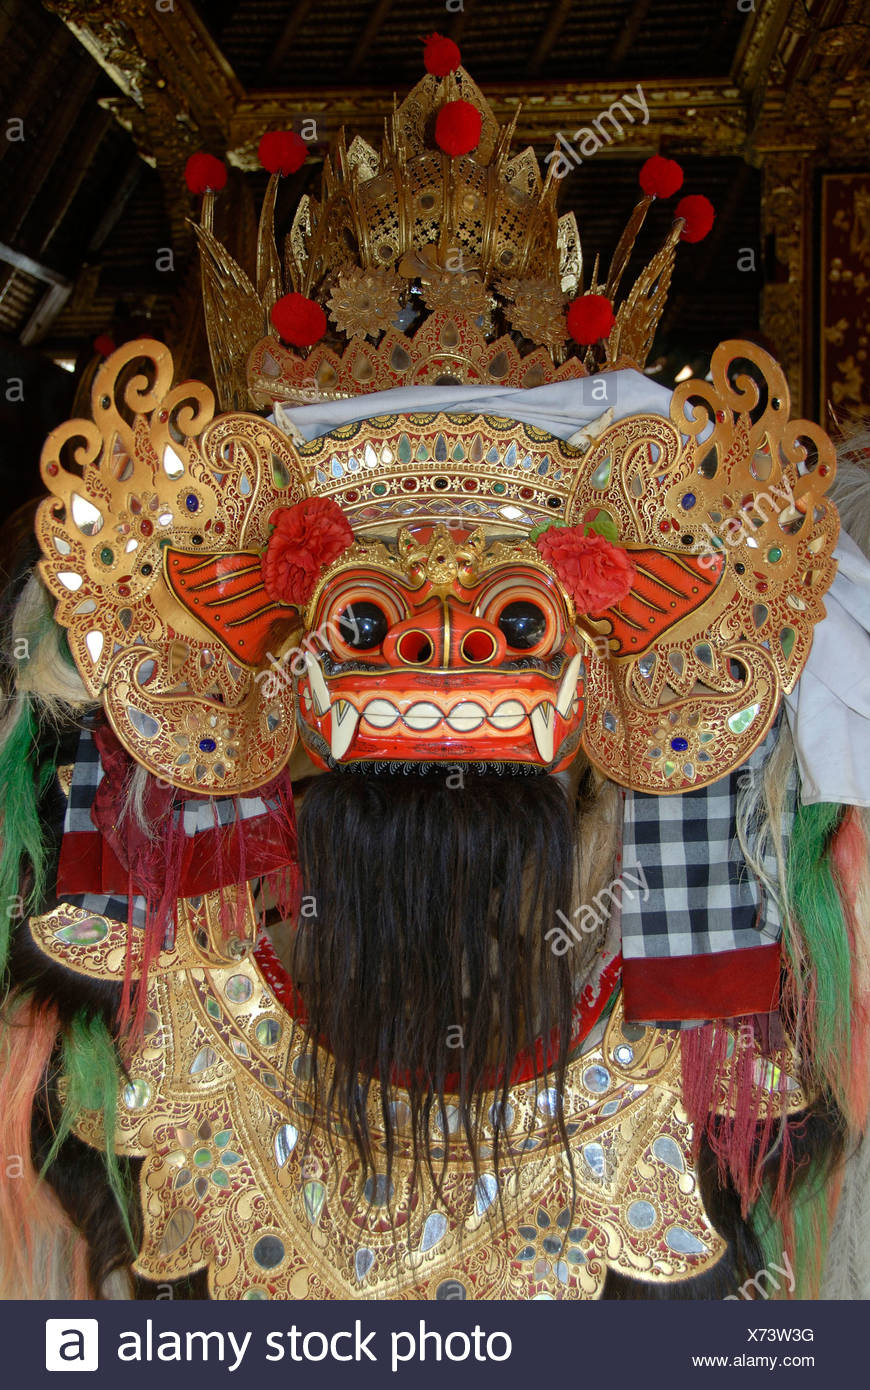 Arts and culture, Barong mask, mystical mythical creature, Ubud, Bali, Indonesia, Southeast Asia, Asia - Stock Image